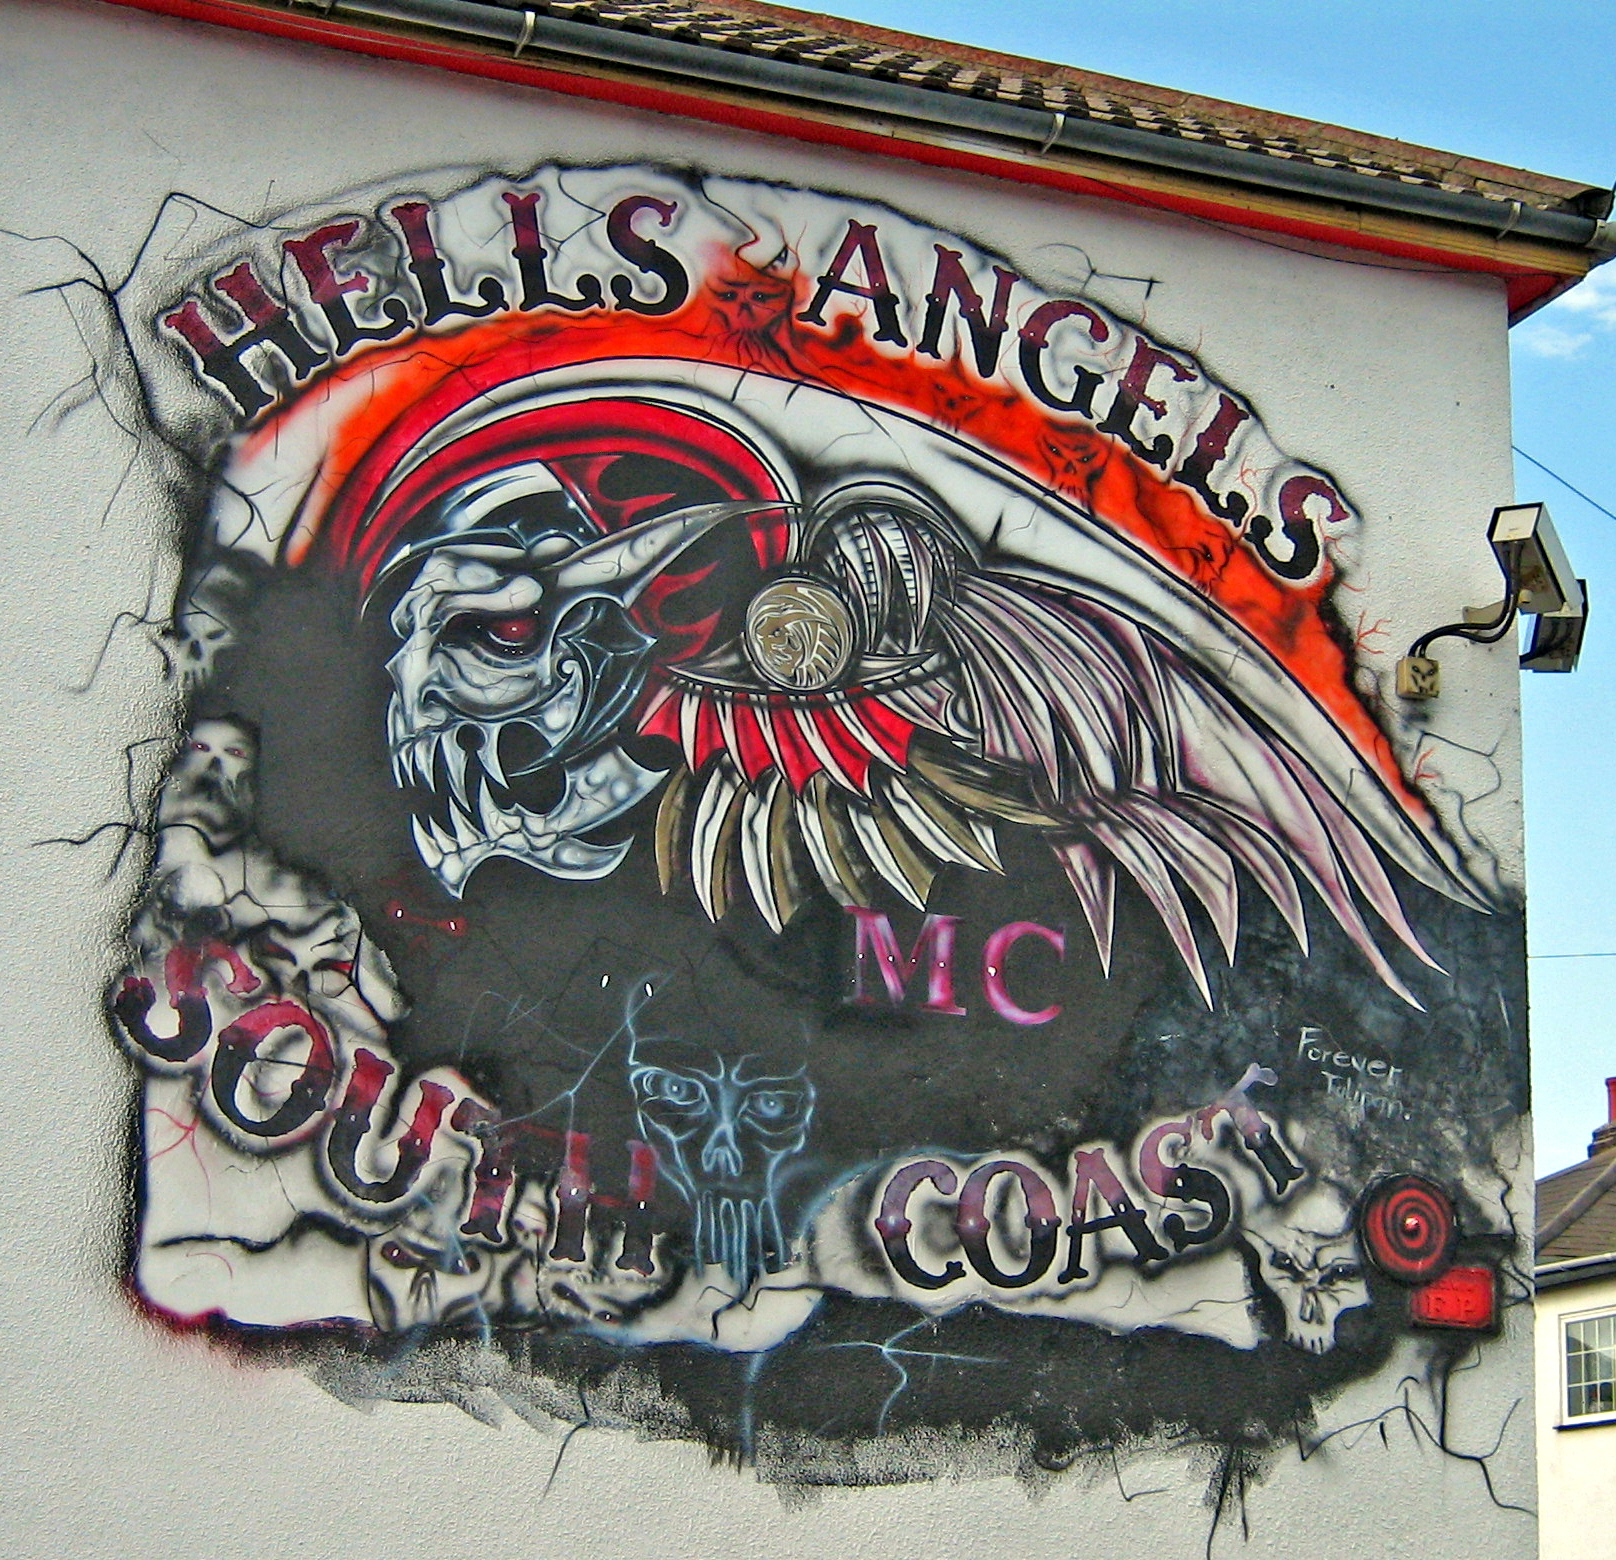 1000 images about gangs on pinterest aryan brotherhood for 18th street gang mural